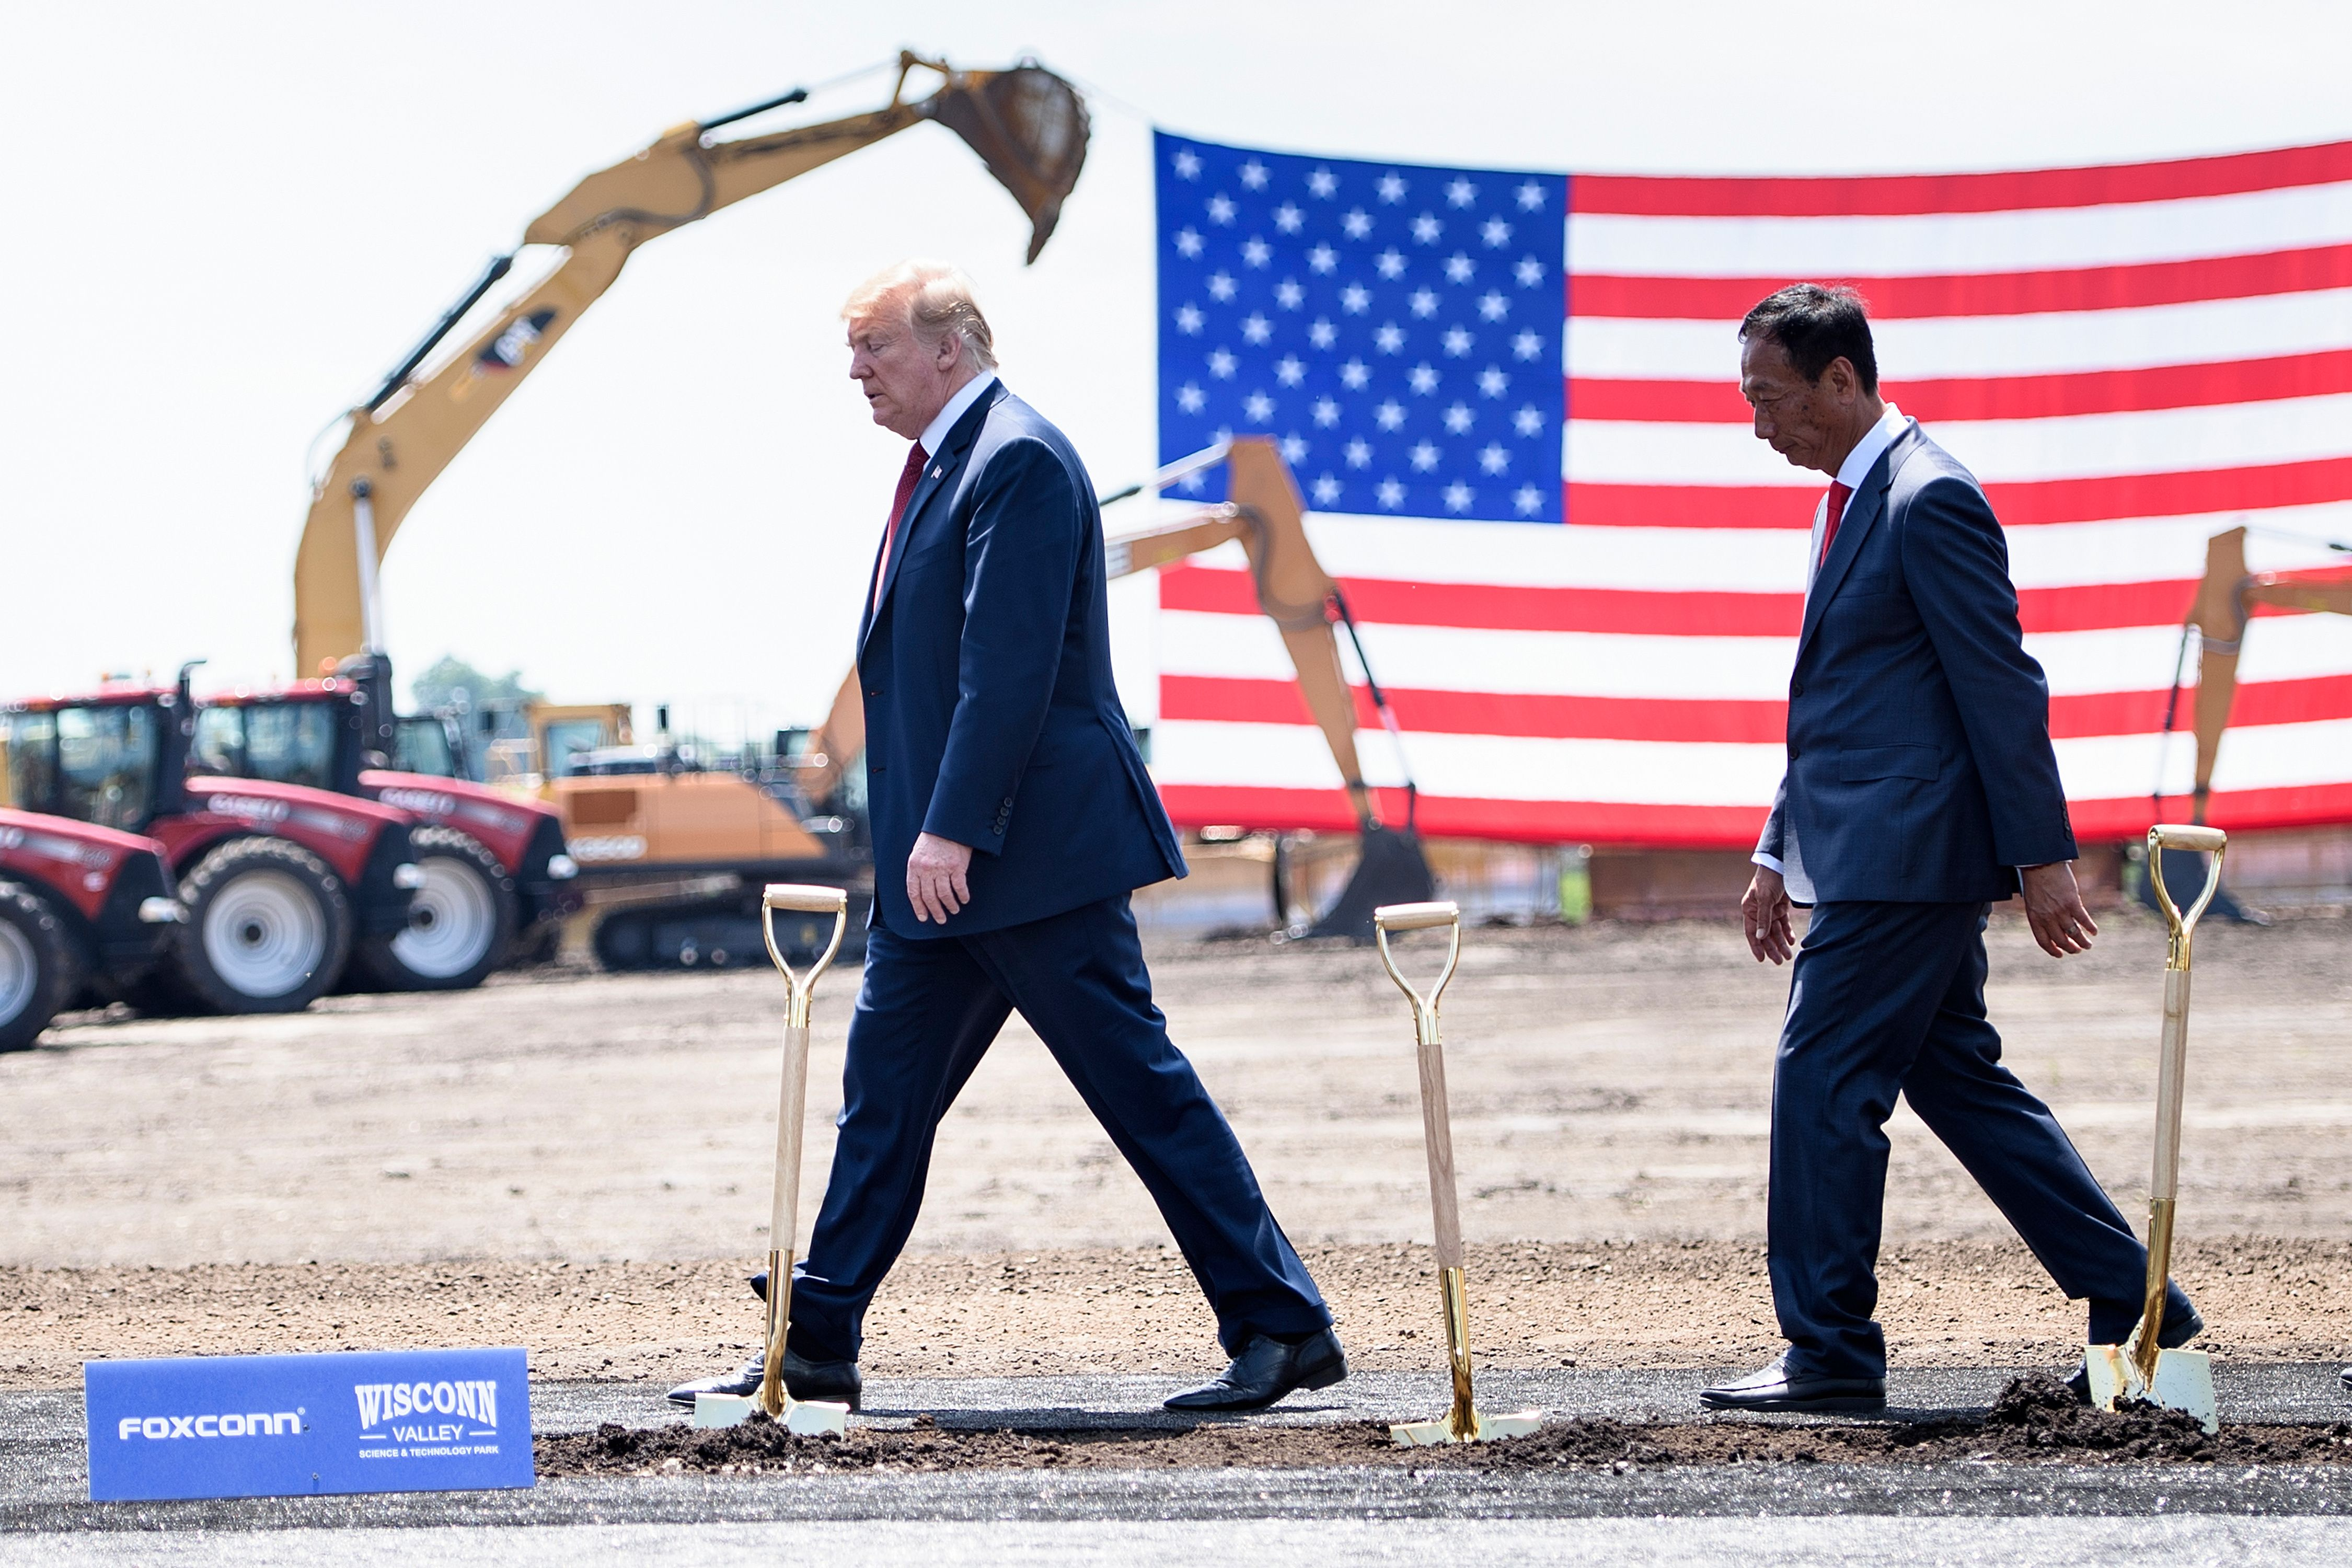 US-POLITICS-ECONOMY-FOXCONN-ENTERPRISES